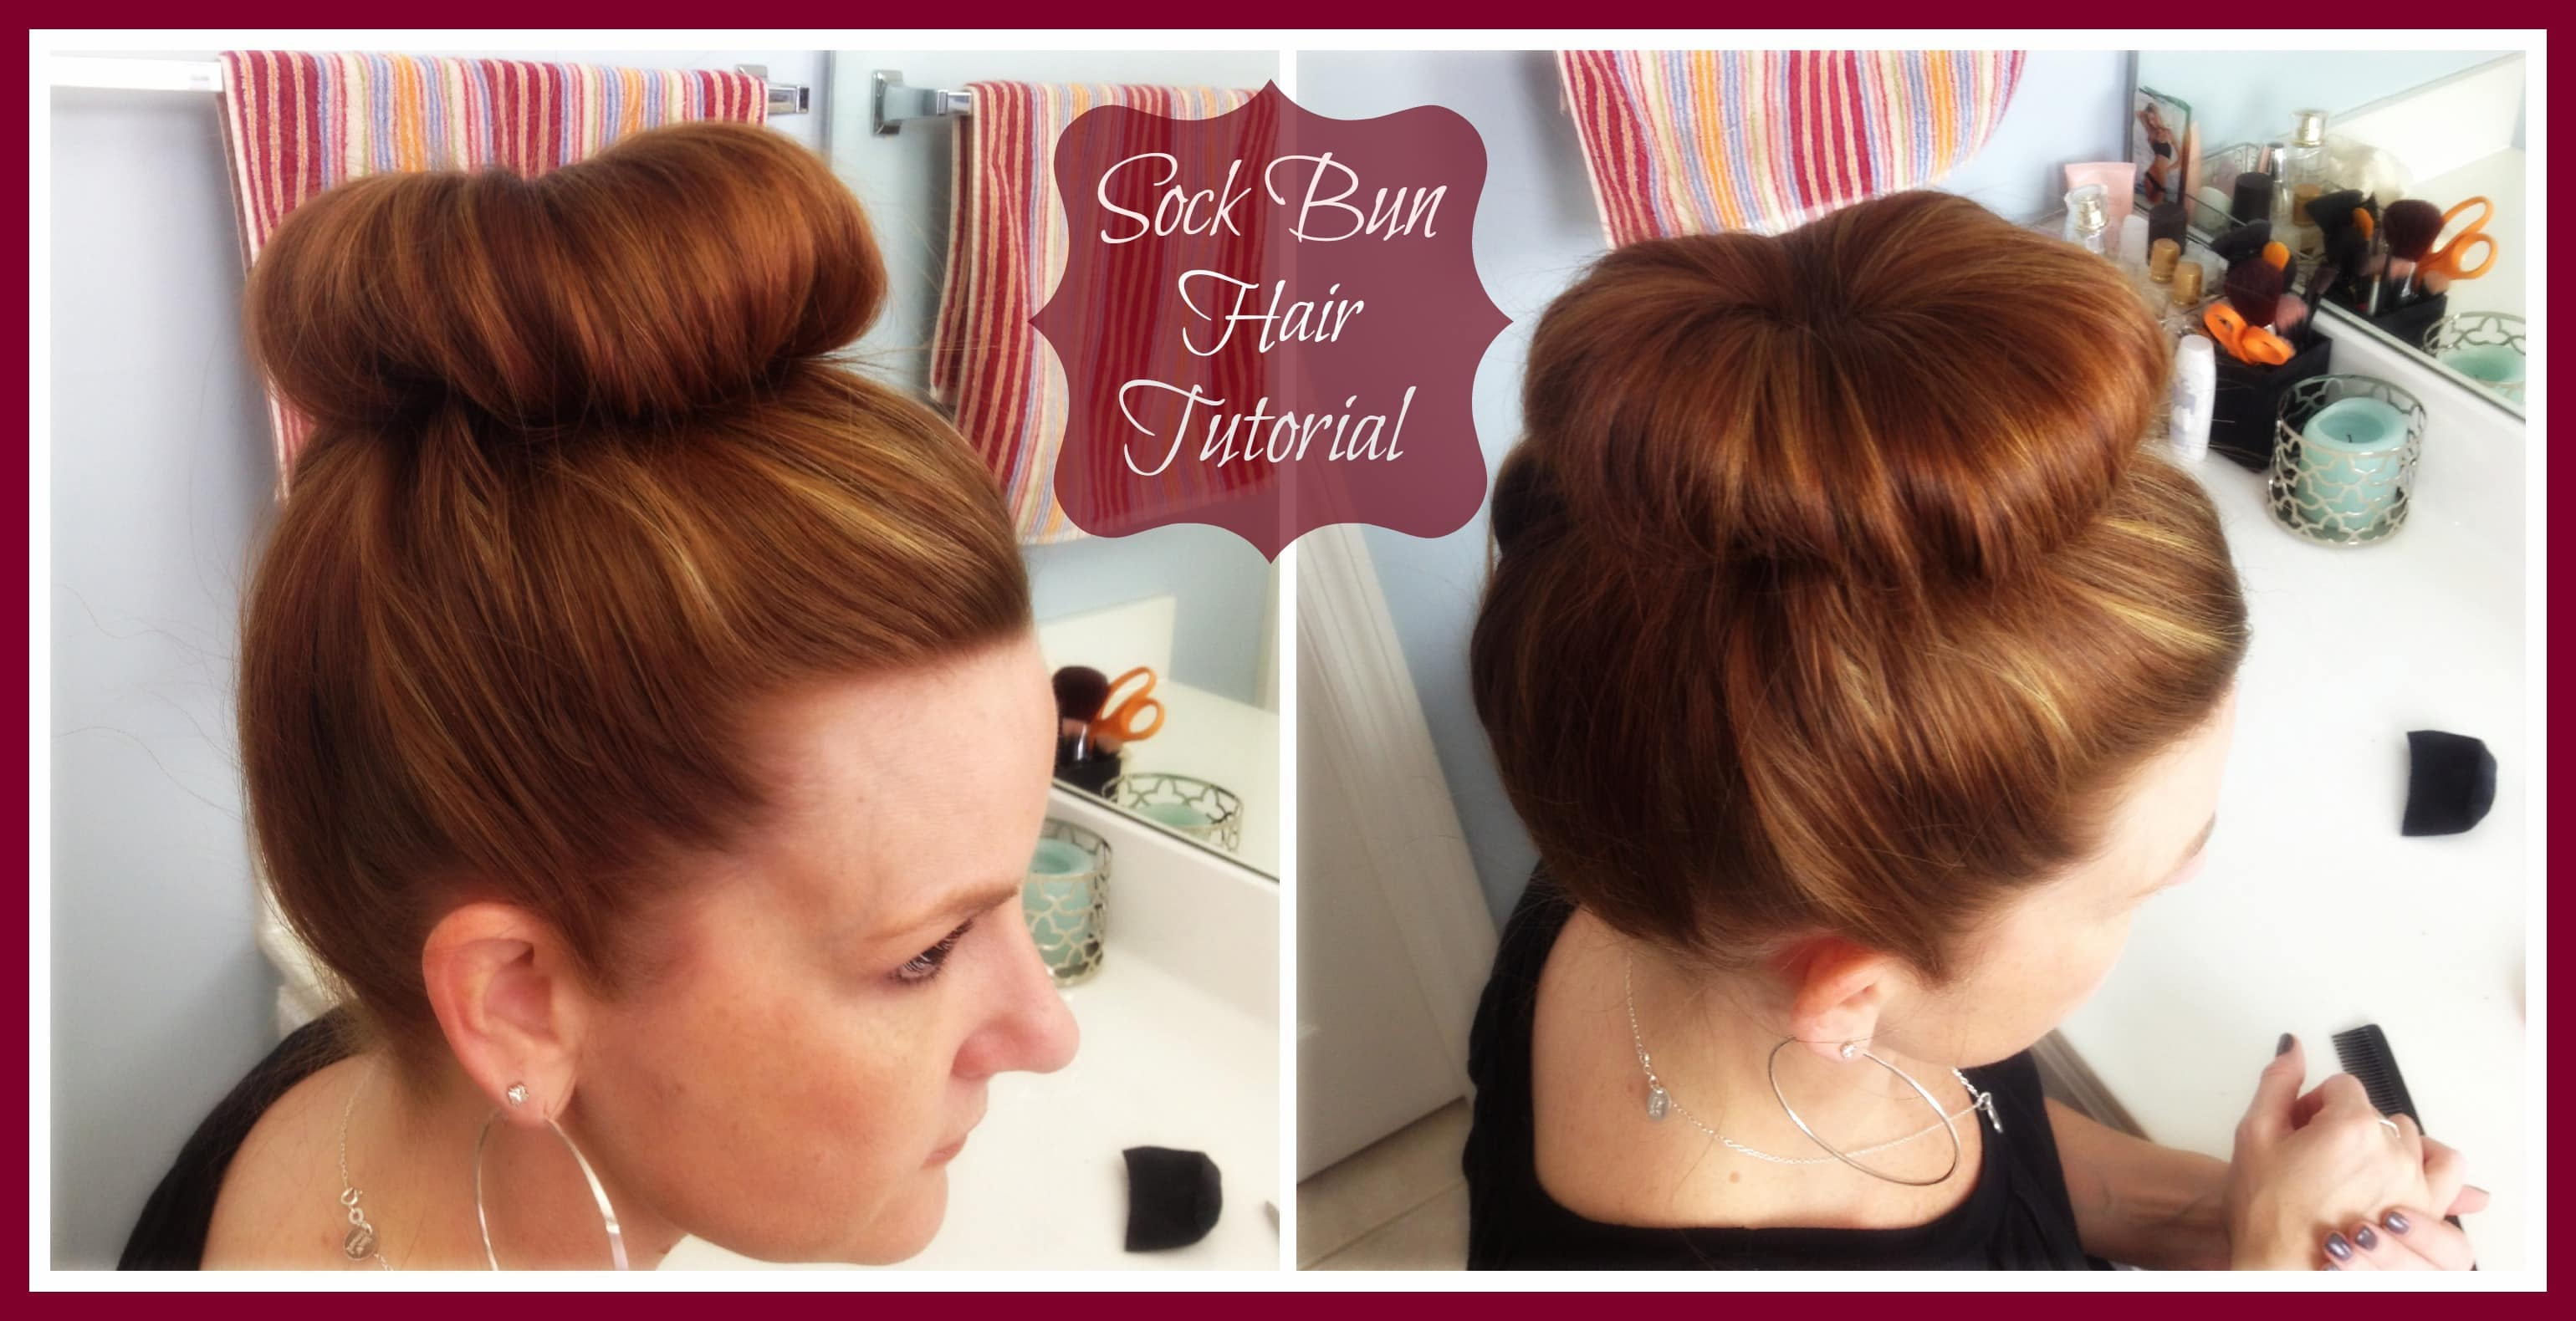 How to do a Sock Bun - Danielle Smith